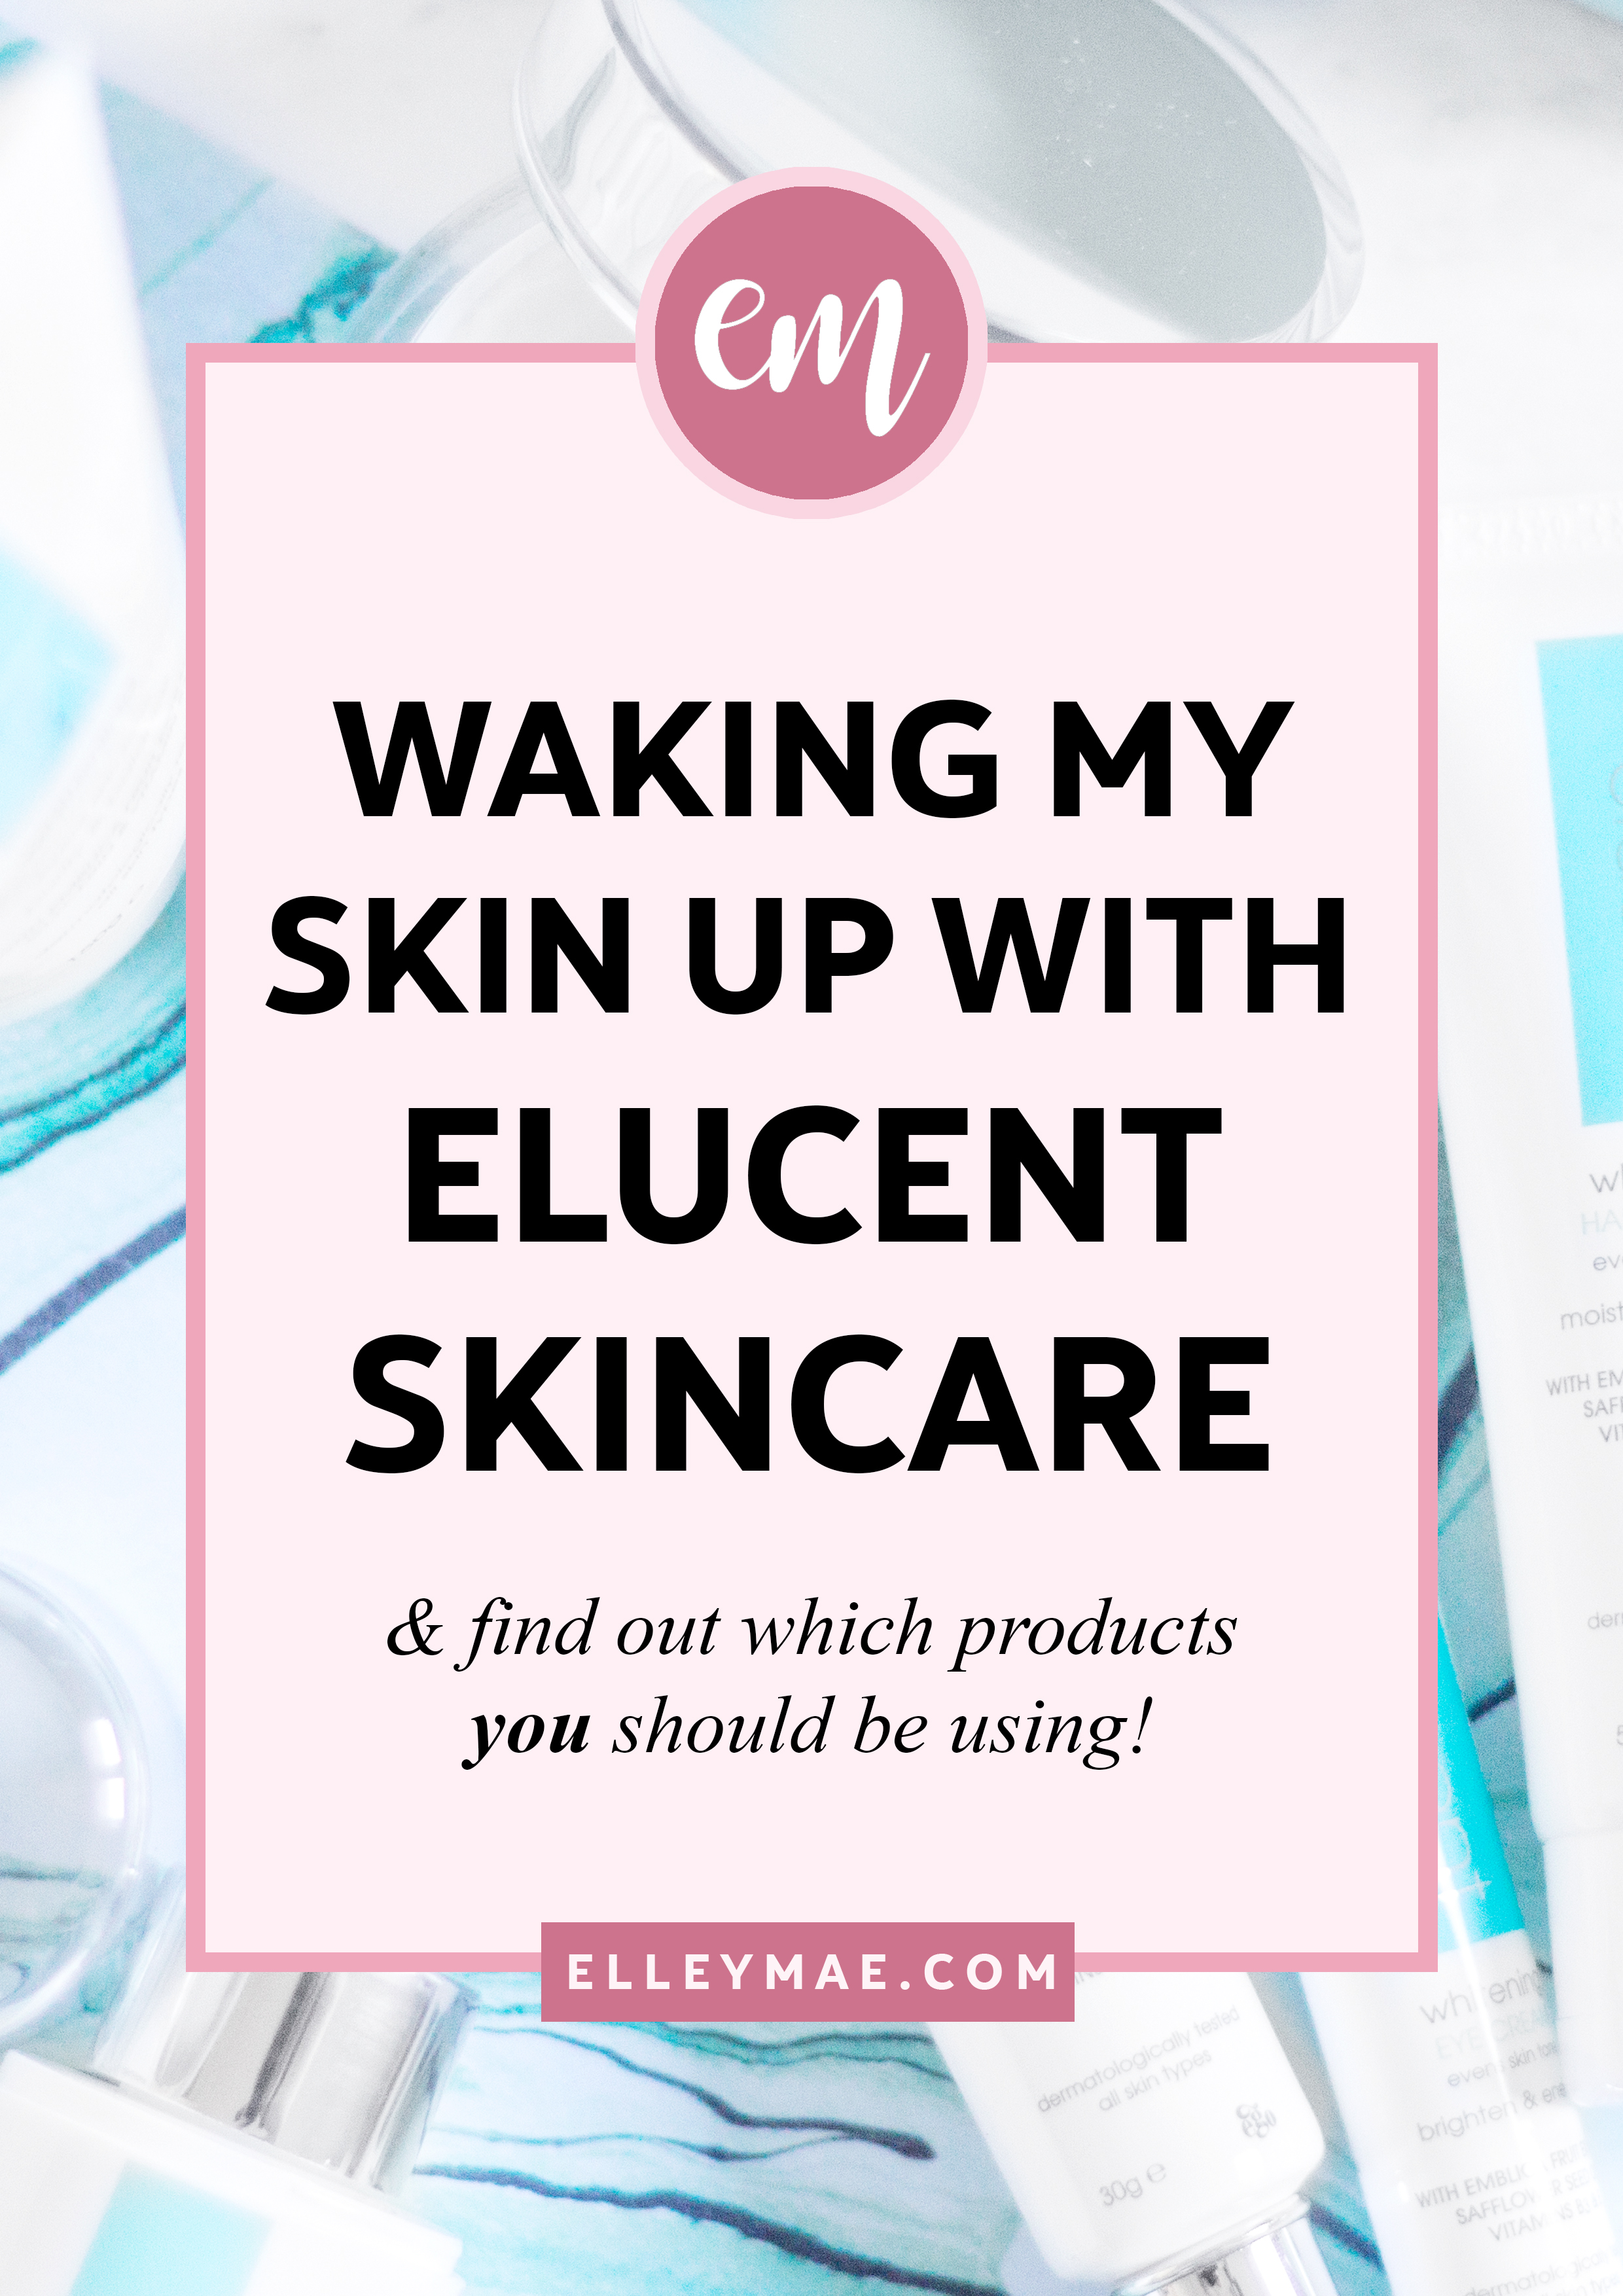 Elucent Skincare | Brightening Skincare Range | Want to know if the Elucent Whitening Skincare range really works? Skincare for dehydrated skin, skincare for dullness, dryness, hyper pigmentation - the works! Elucent Skincare is dermatologically tested on all skin types to show results. Learn more at ElleyMae.com